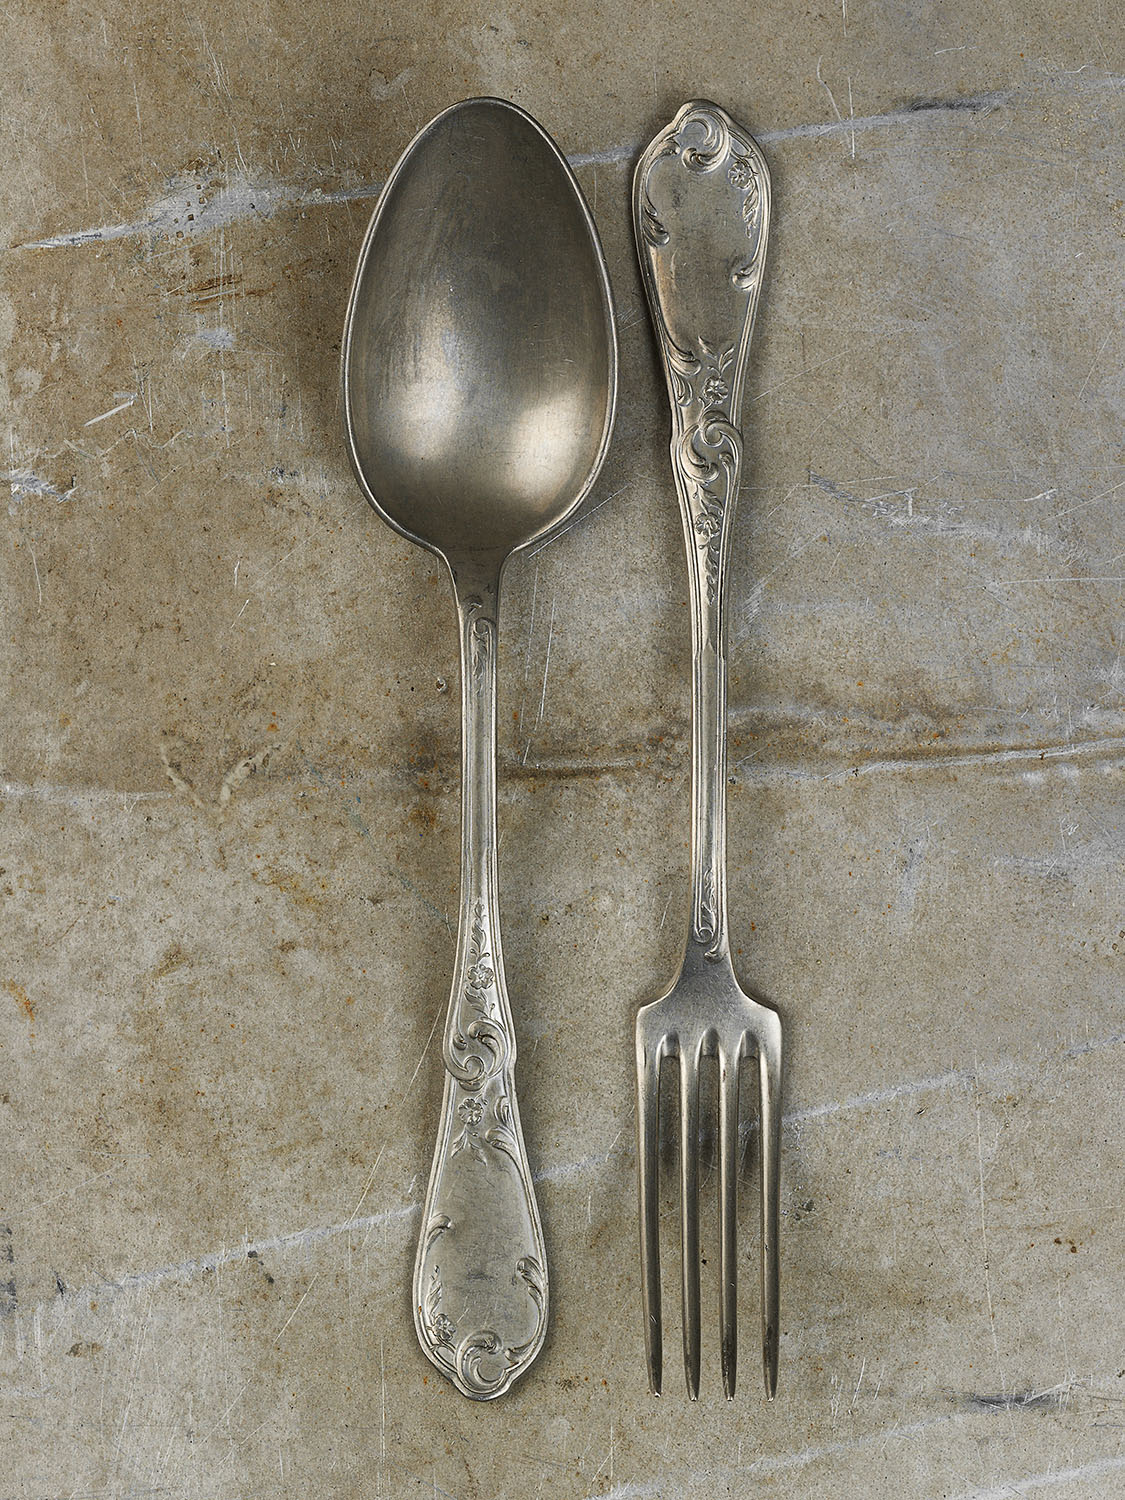 #54 French Spoon & Fork